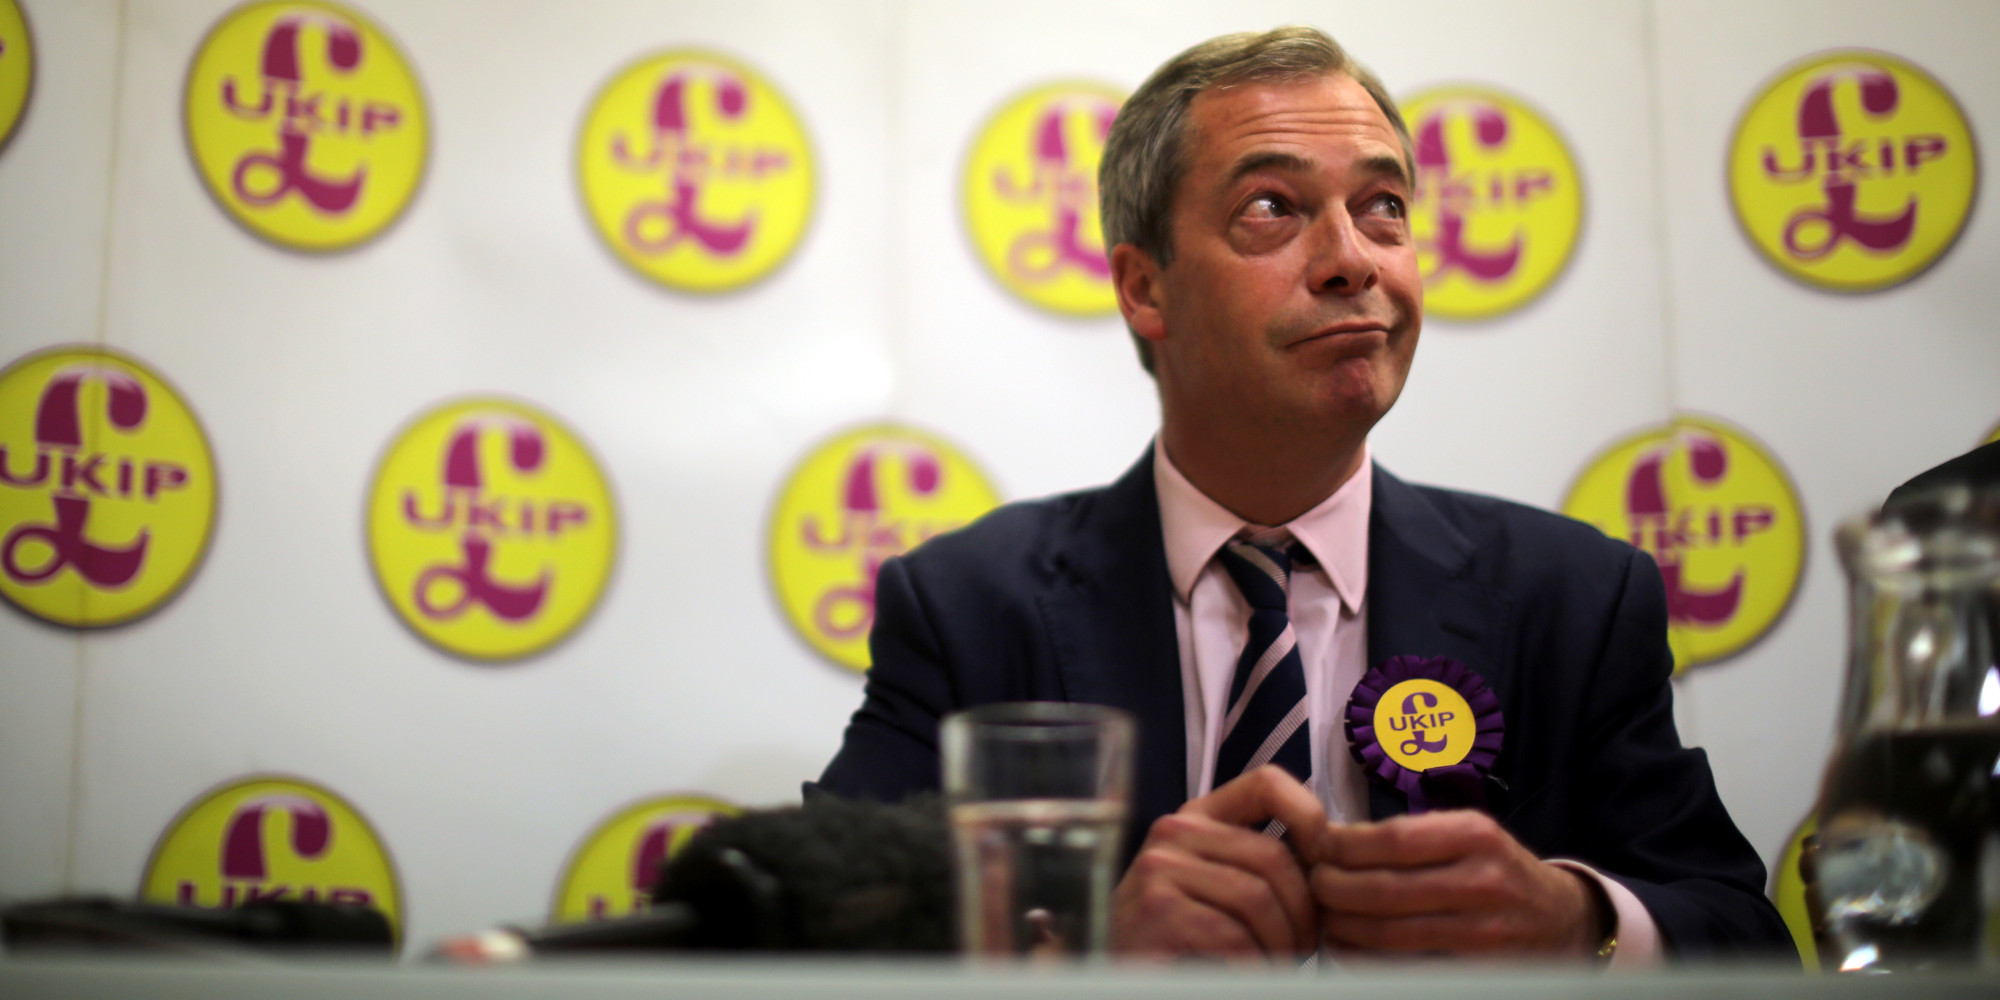 Nigel Farage, le leader d'UKIP